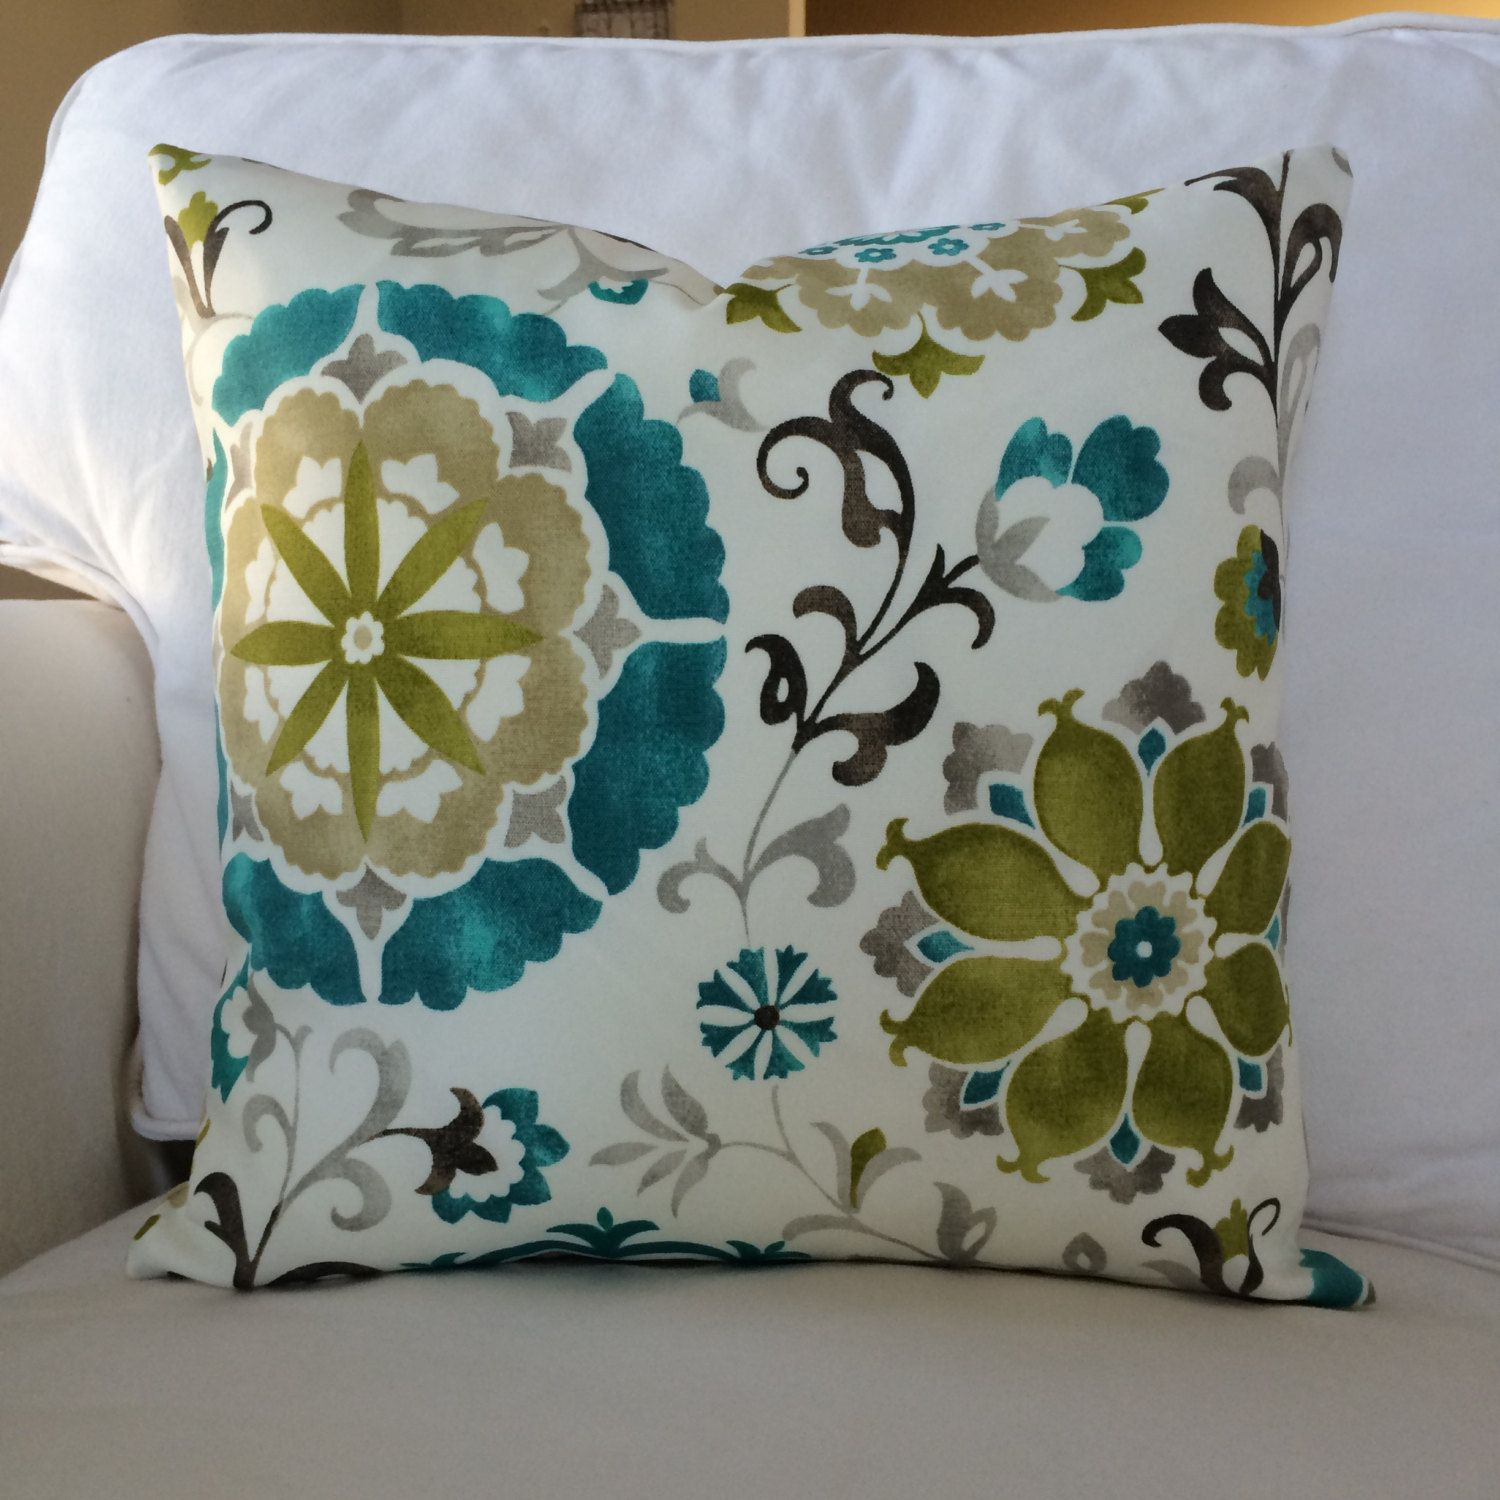 of lovely inch pillow throw teal colorful pillows set the luxury decorative colored blue new toss most safavieh aqua oceans for couch